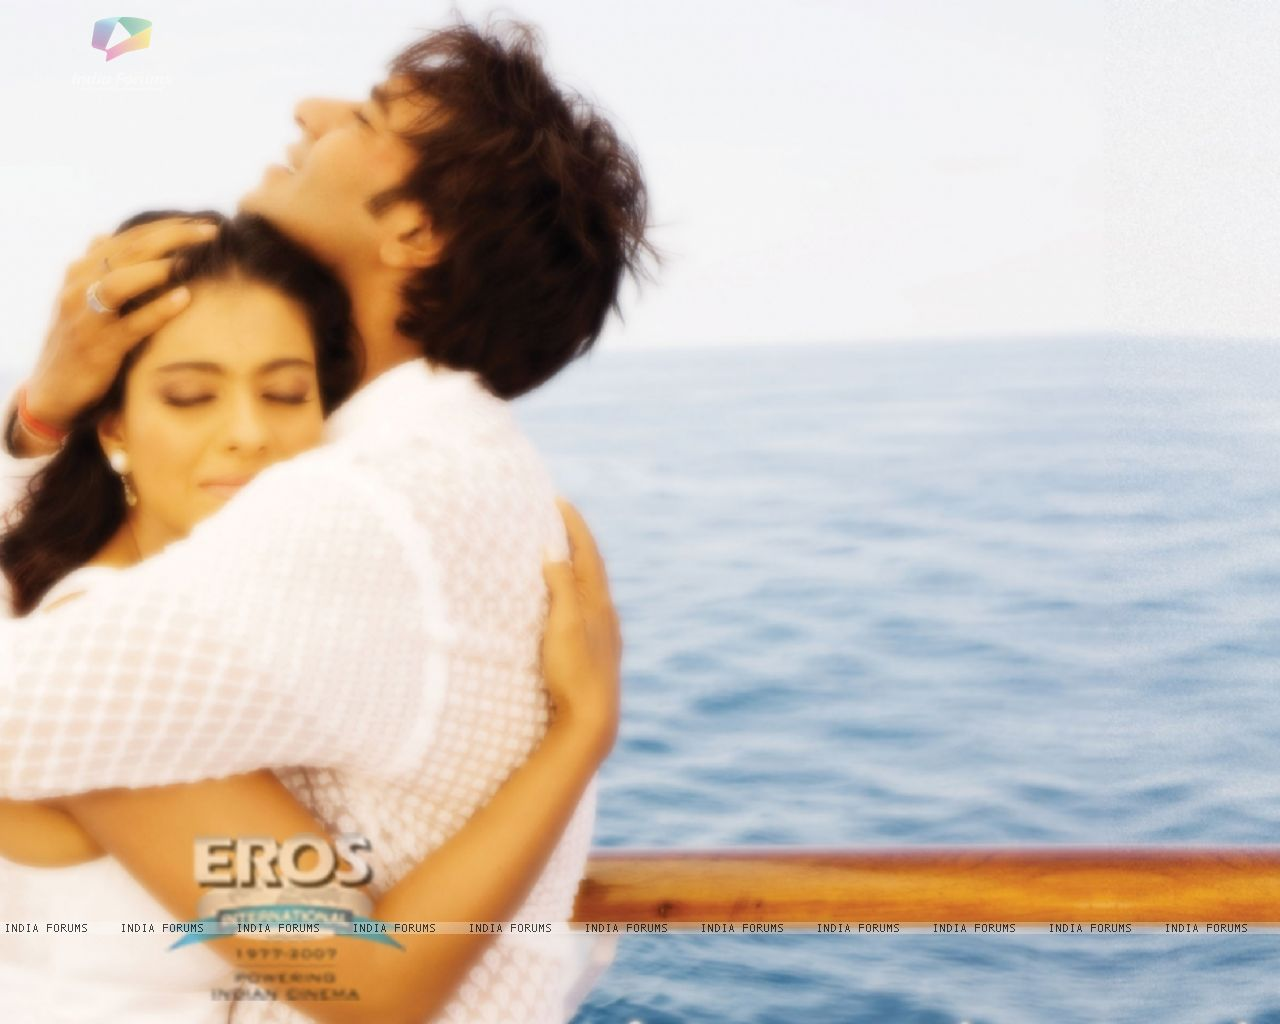 Wallpaper   Kajol and Ajay hugging each other 12301 size1280x1024 1280x1024